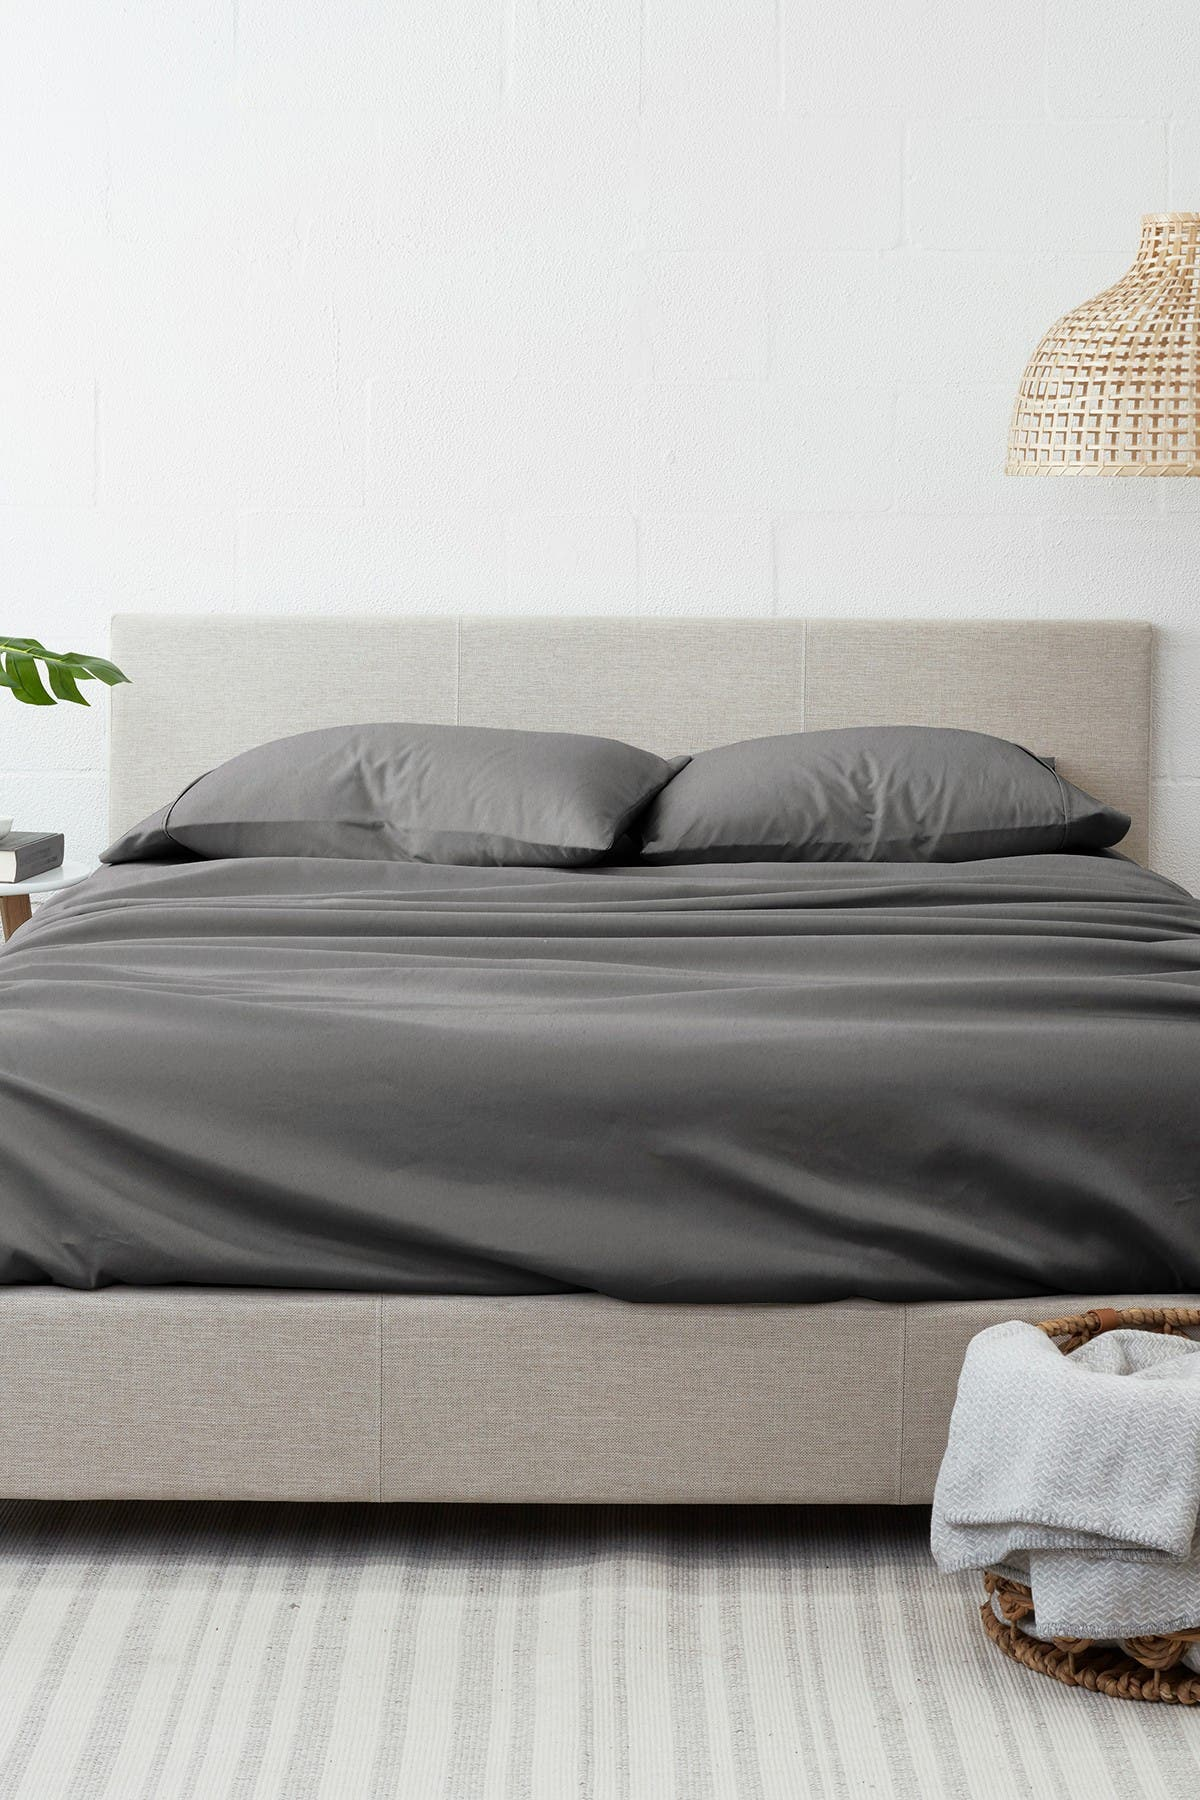 Image of IENJOY HOME Home Collection Premium 4-Piece Full Ultra Soft Flannel Bed Sheet Set - Gray